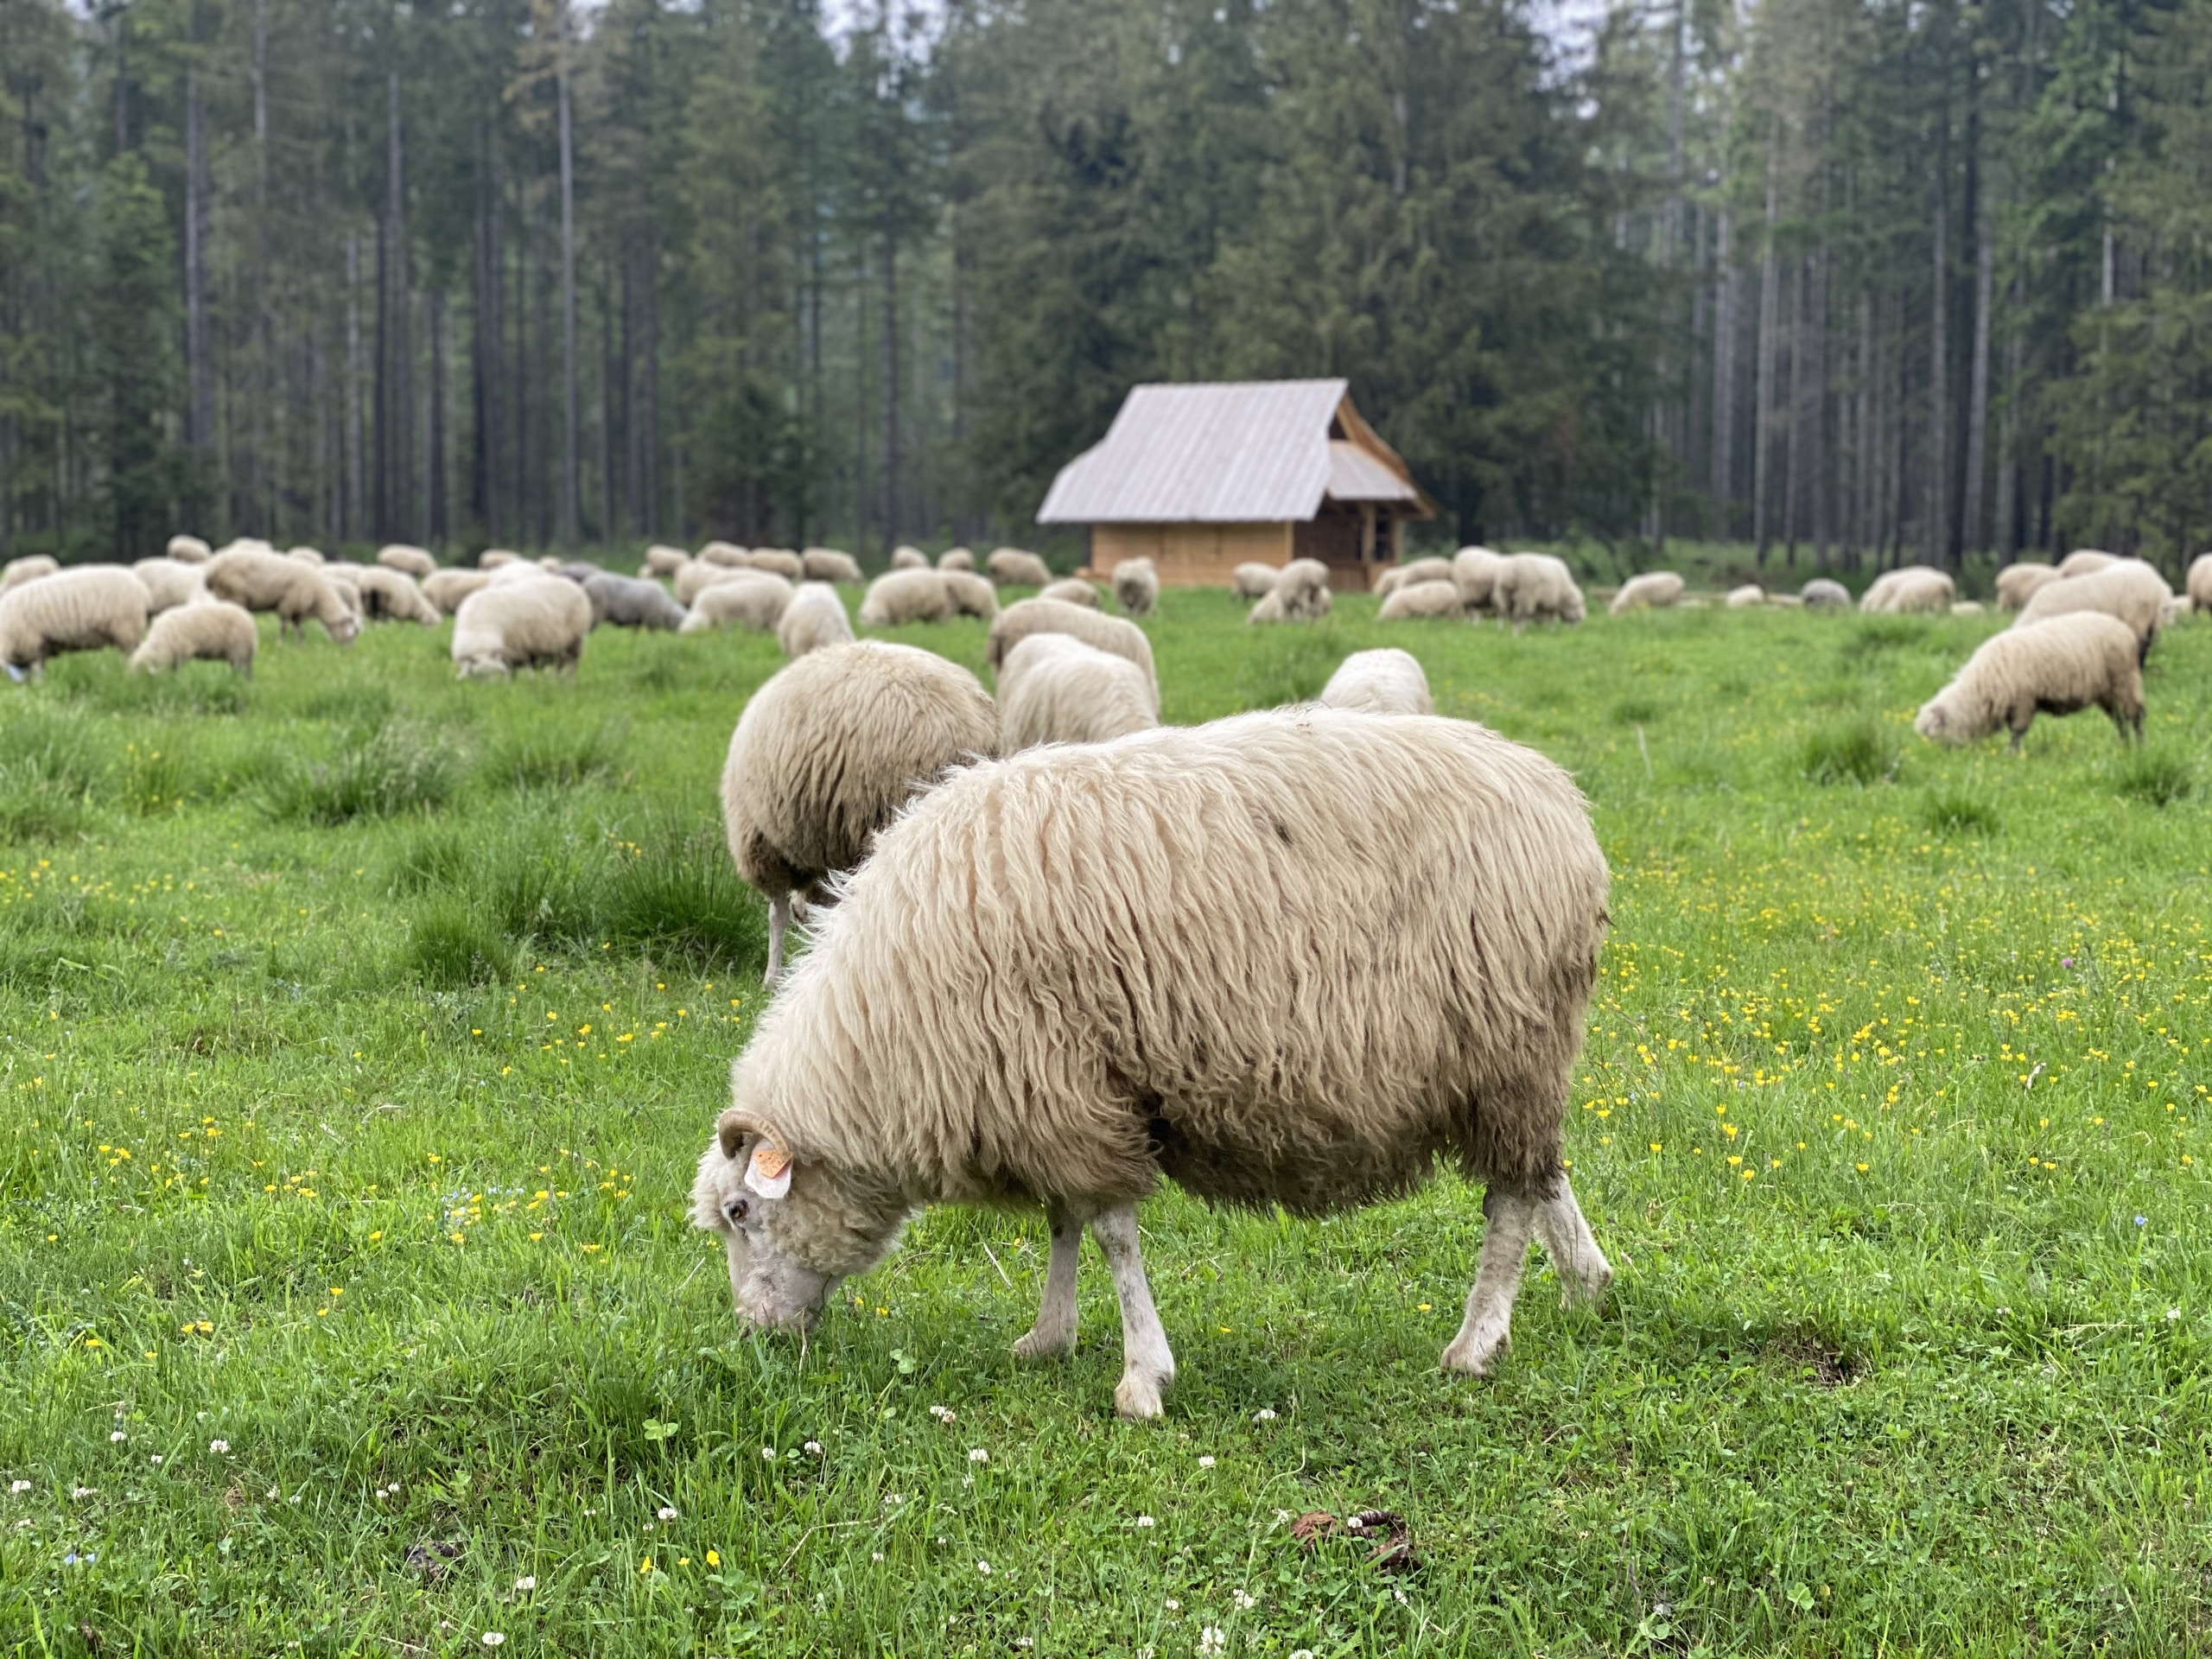 Jesus Says: My Sheep Listen to My Voice